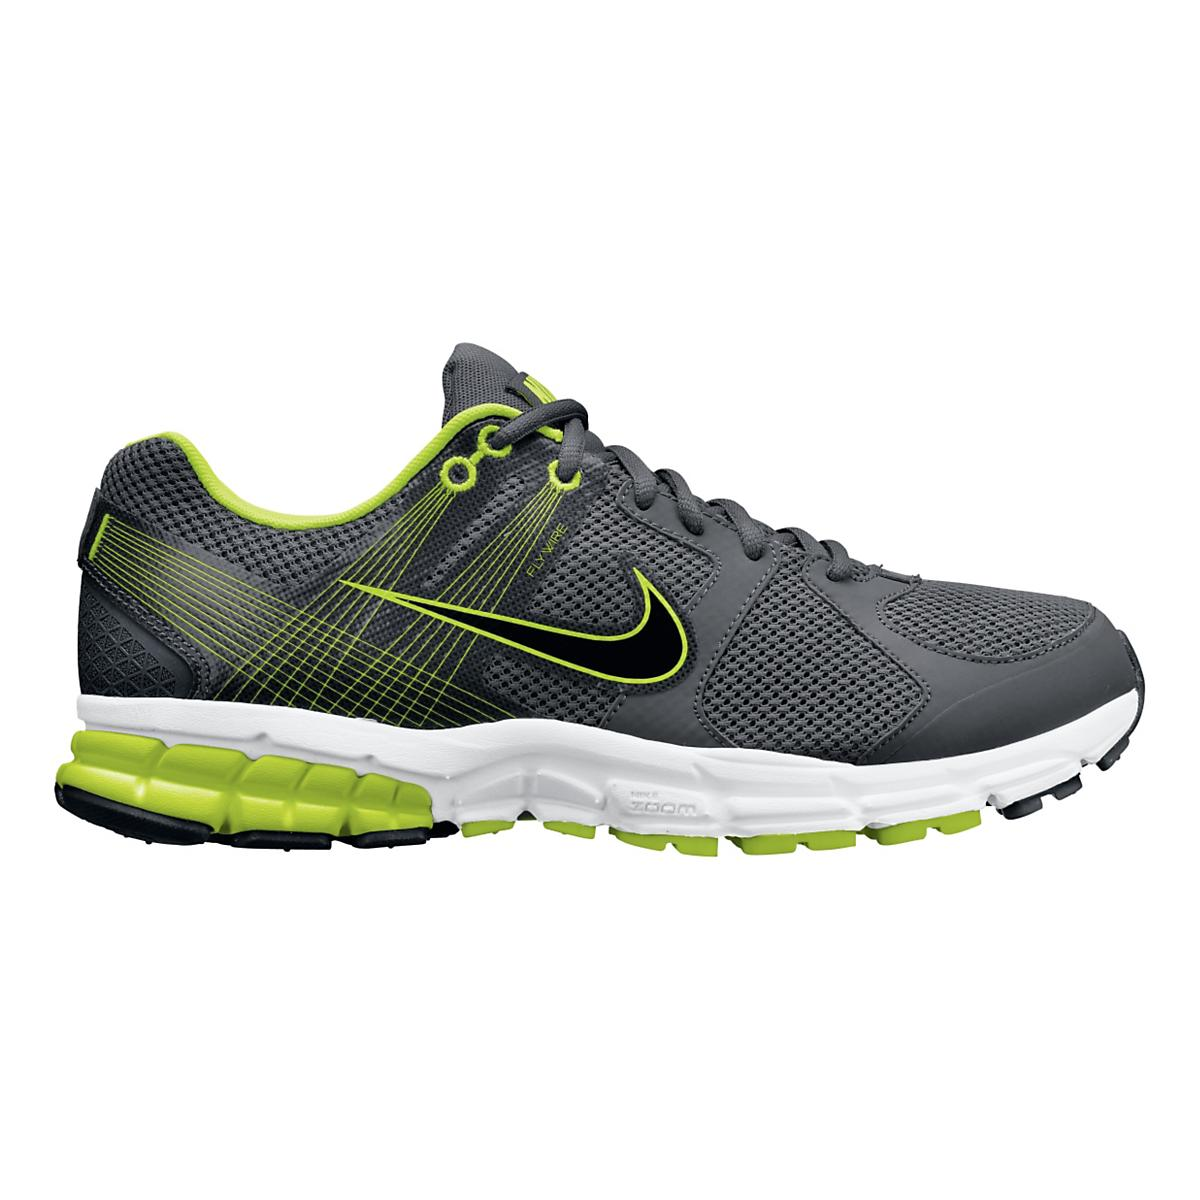 4fd179d7b0e Mens Nike Zoom Structure+ 15 Running Shoe at Road Runner Sports